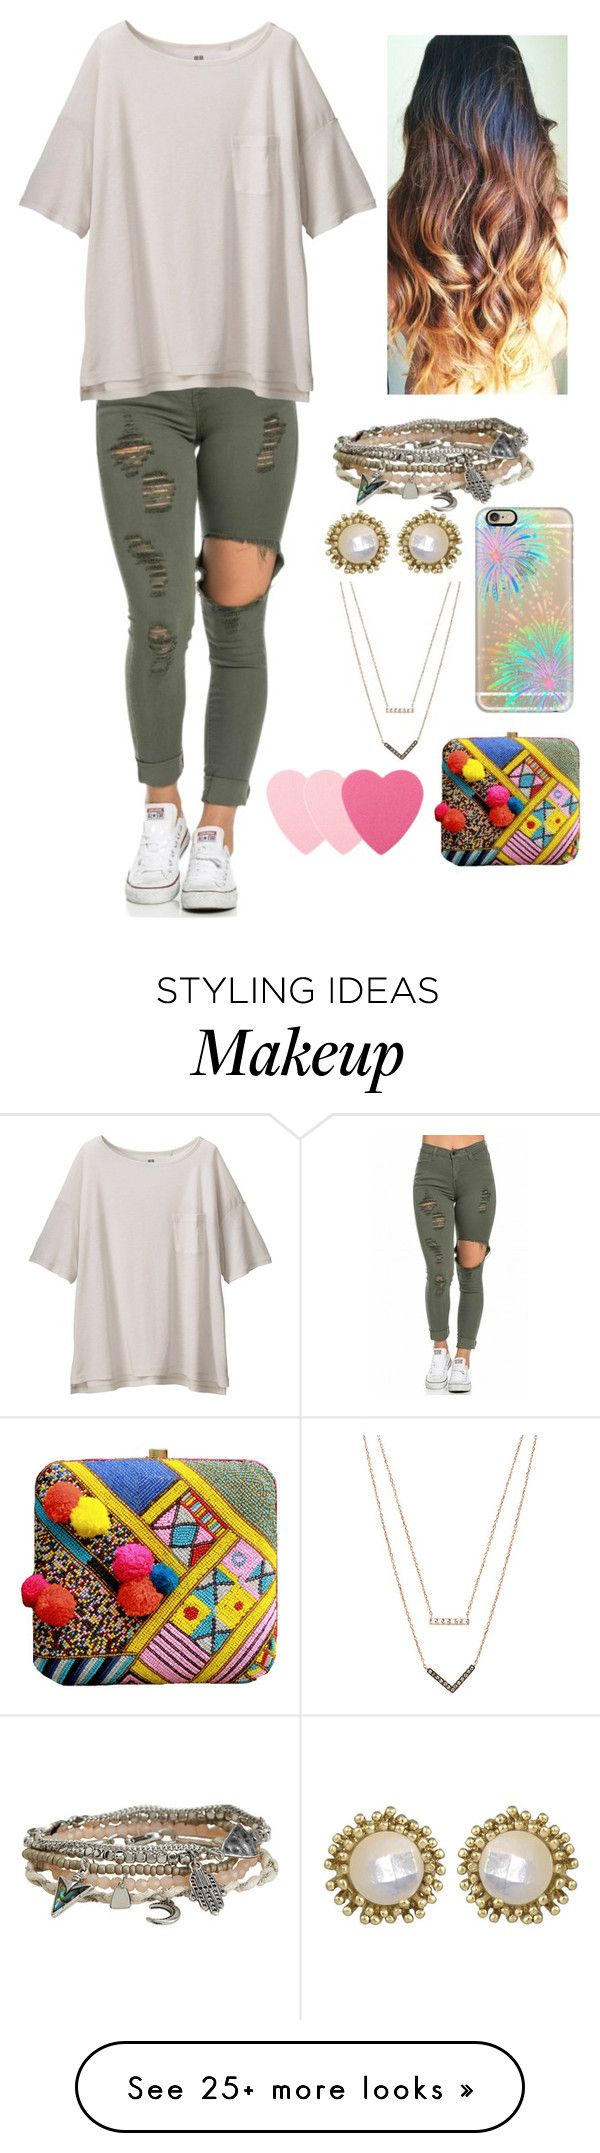 """casual"" by genesisdallas on Polyvore featuring Uniqlo, Aéropostale, Kendra Scott, Michael Kors, Casetify, Sephora Collection, women's clothing, women's fashion, women and female"